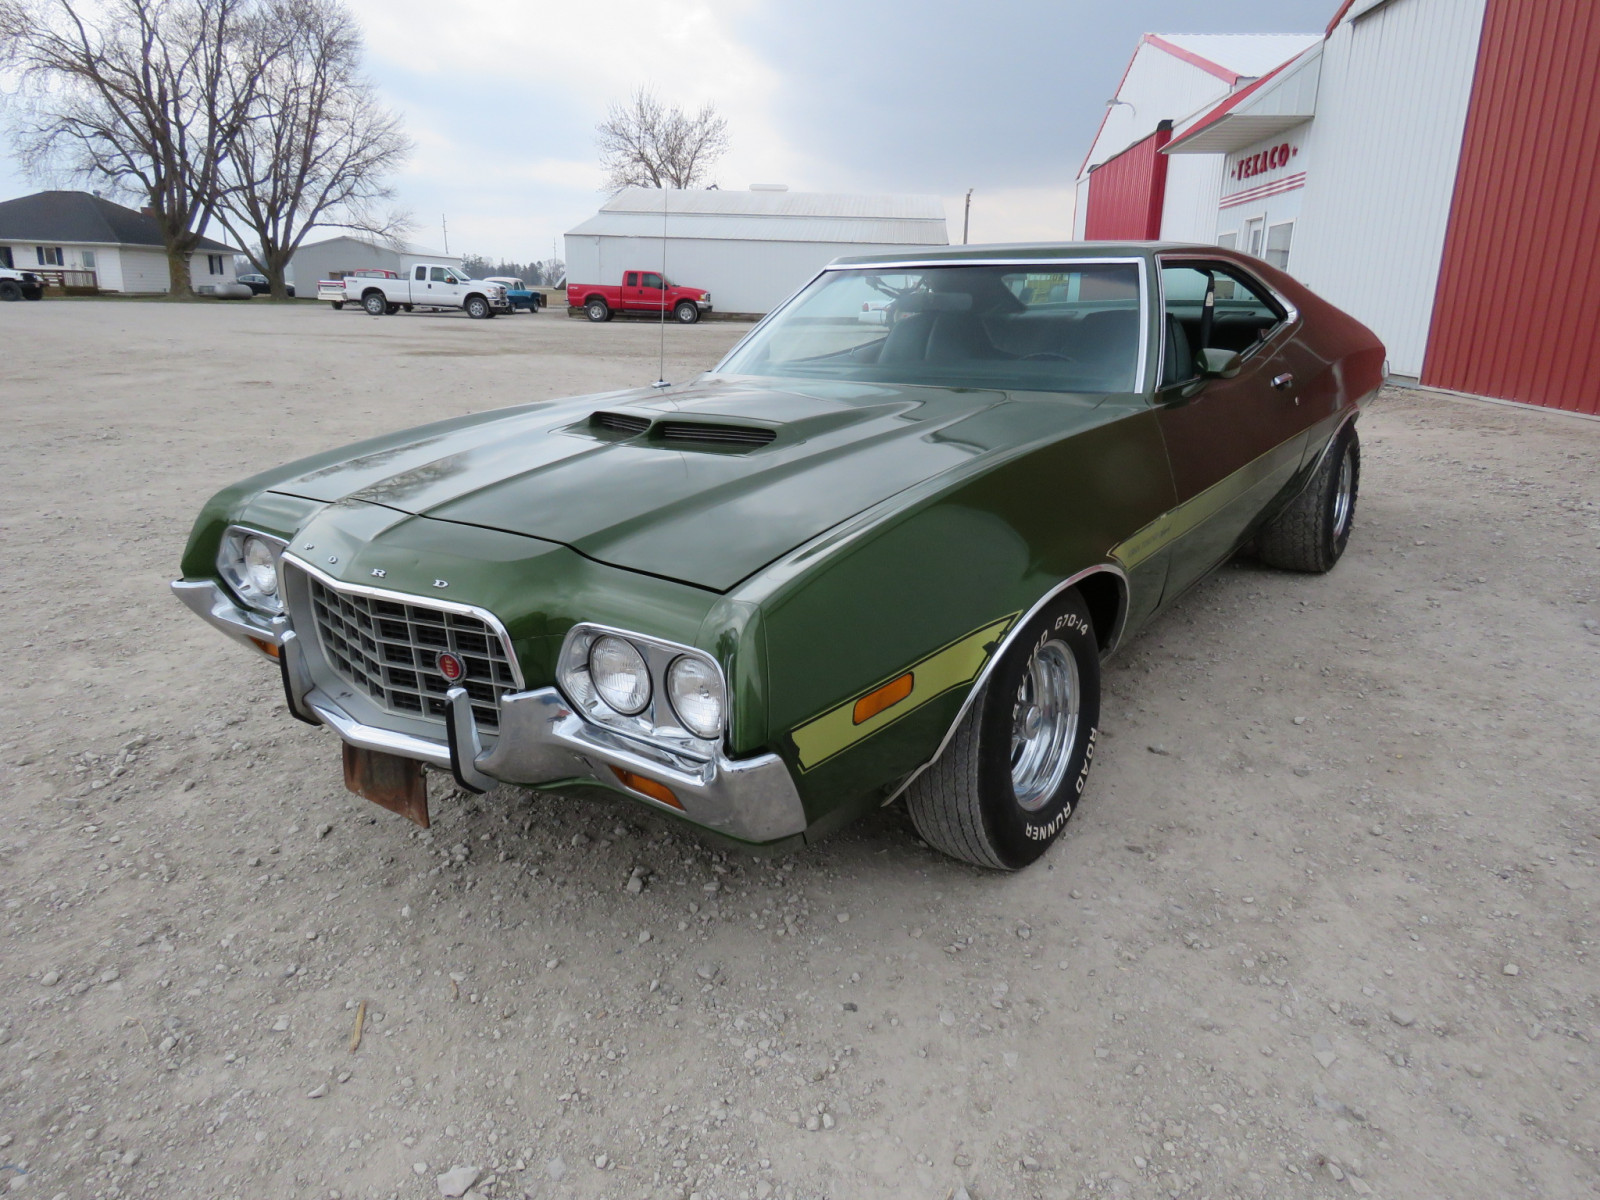 1972 Ford Torino GT Coupe - Image 3